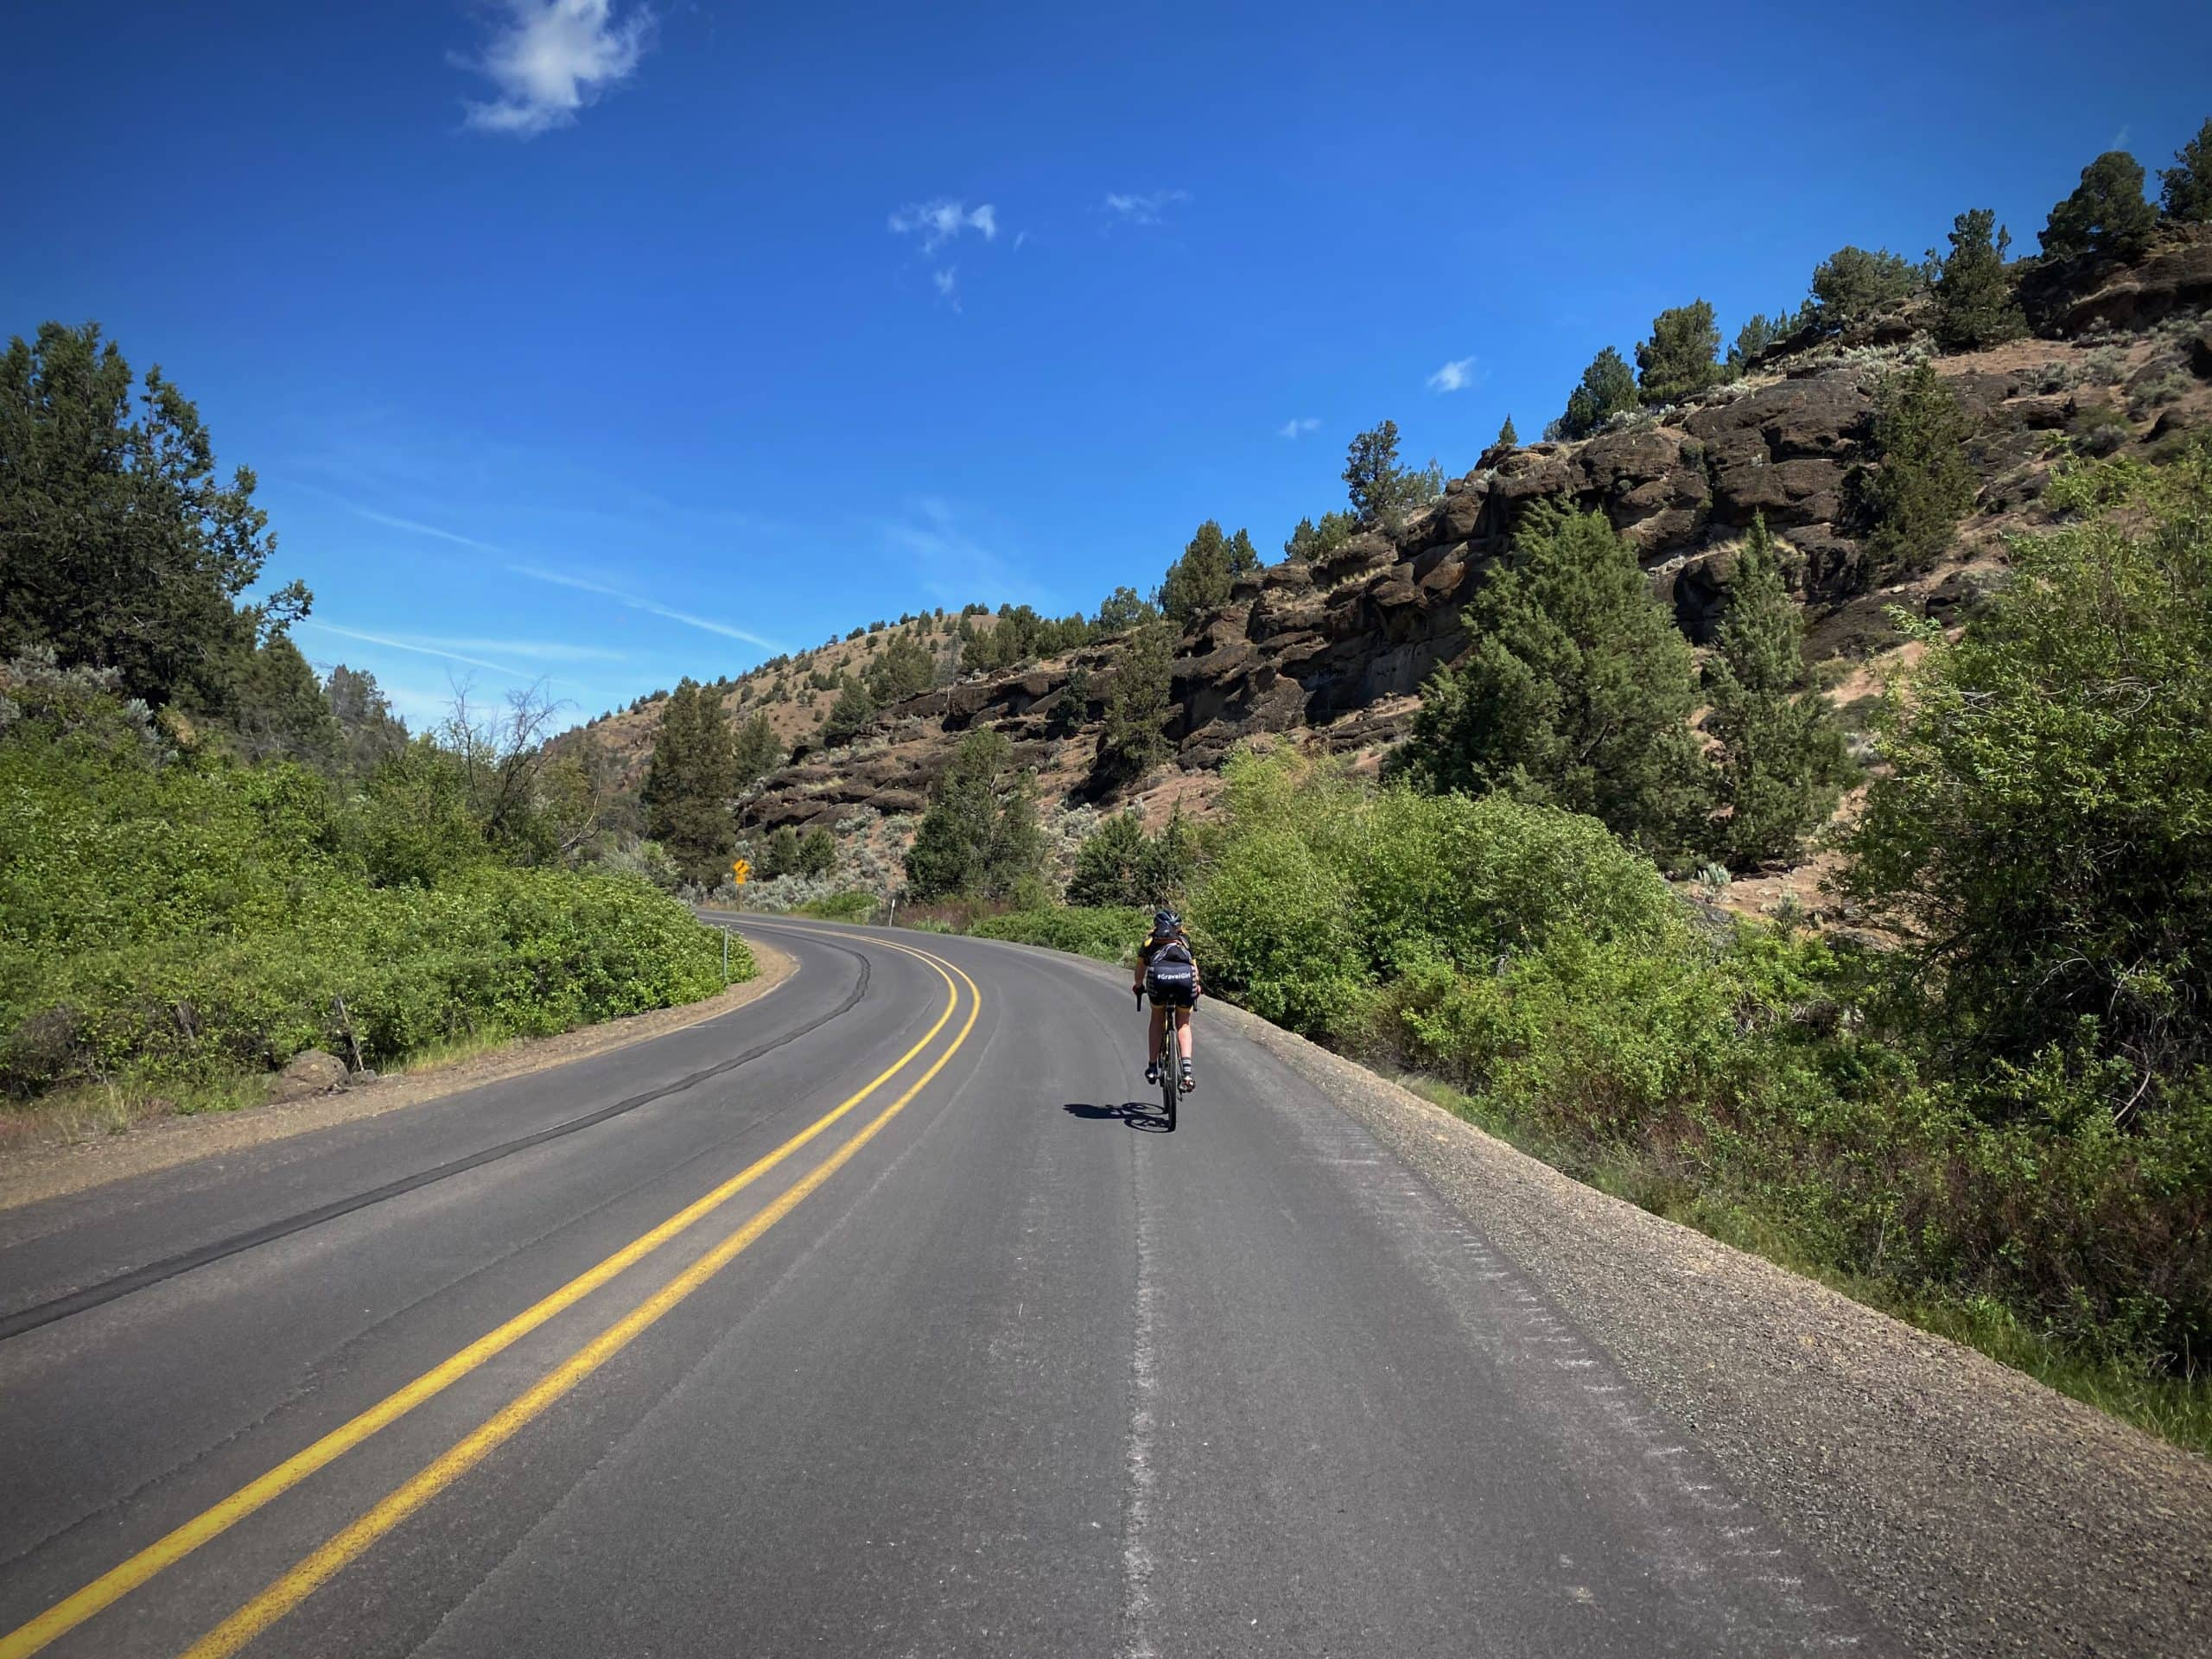 Cyclist on the Painted Hills Scenic bikeway route near the Twickenham intersection in Central Oregon.